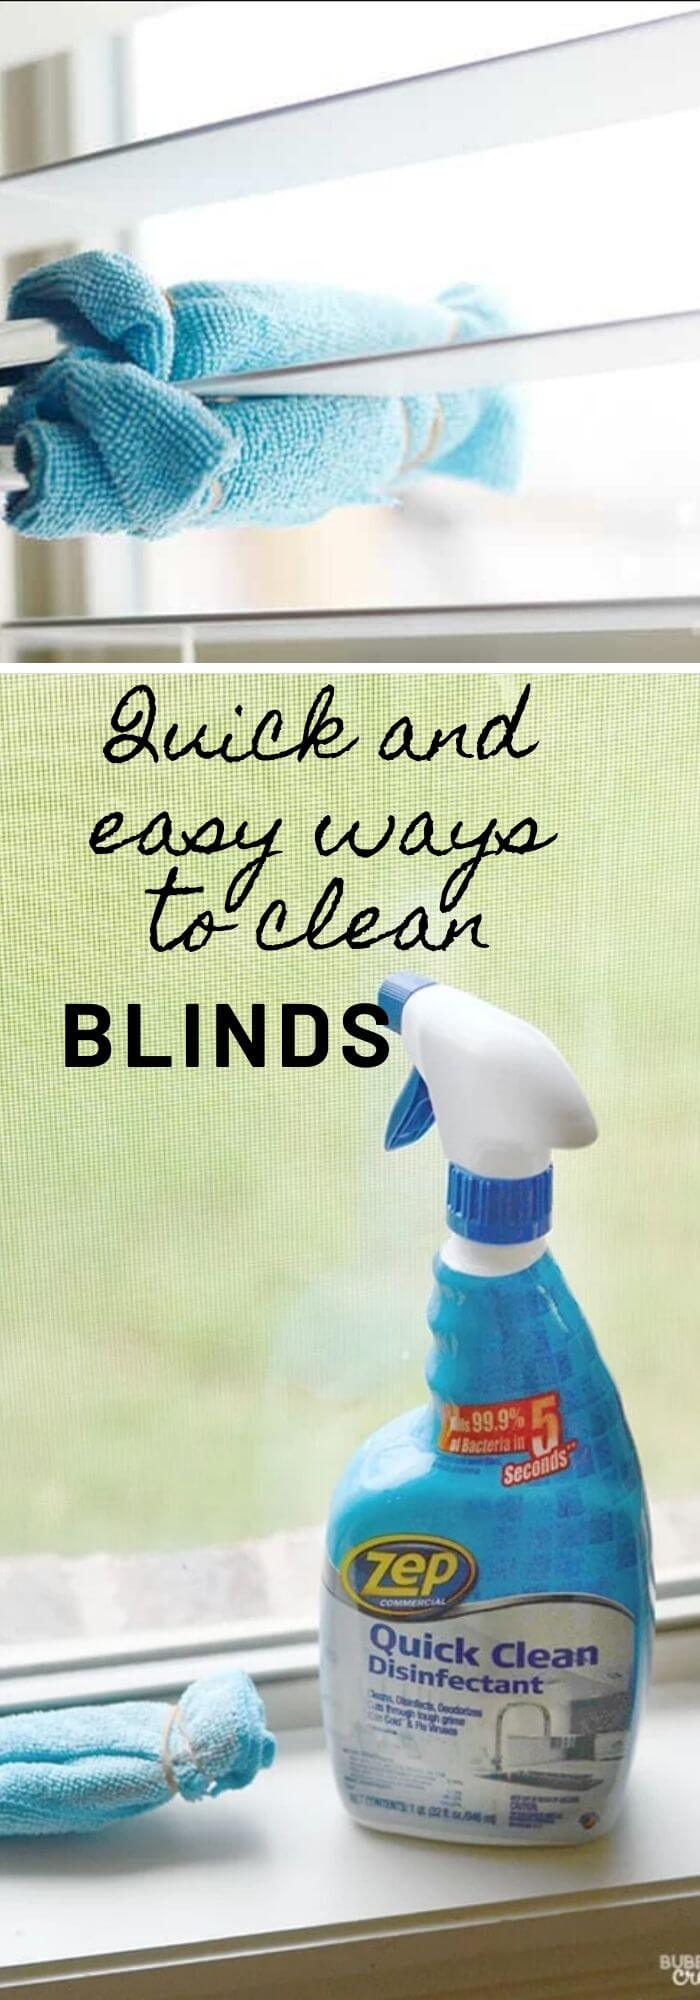 Easy ways to clean blinds